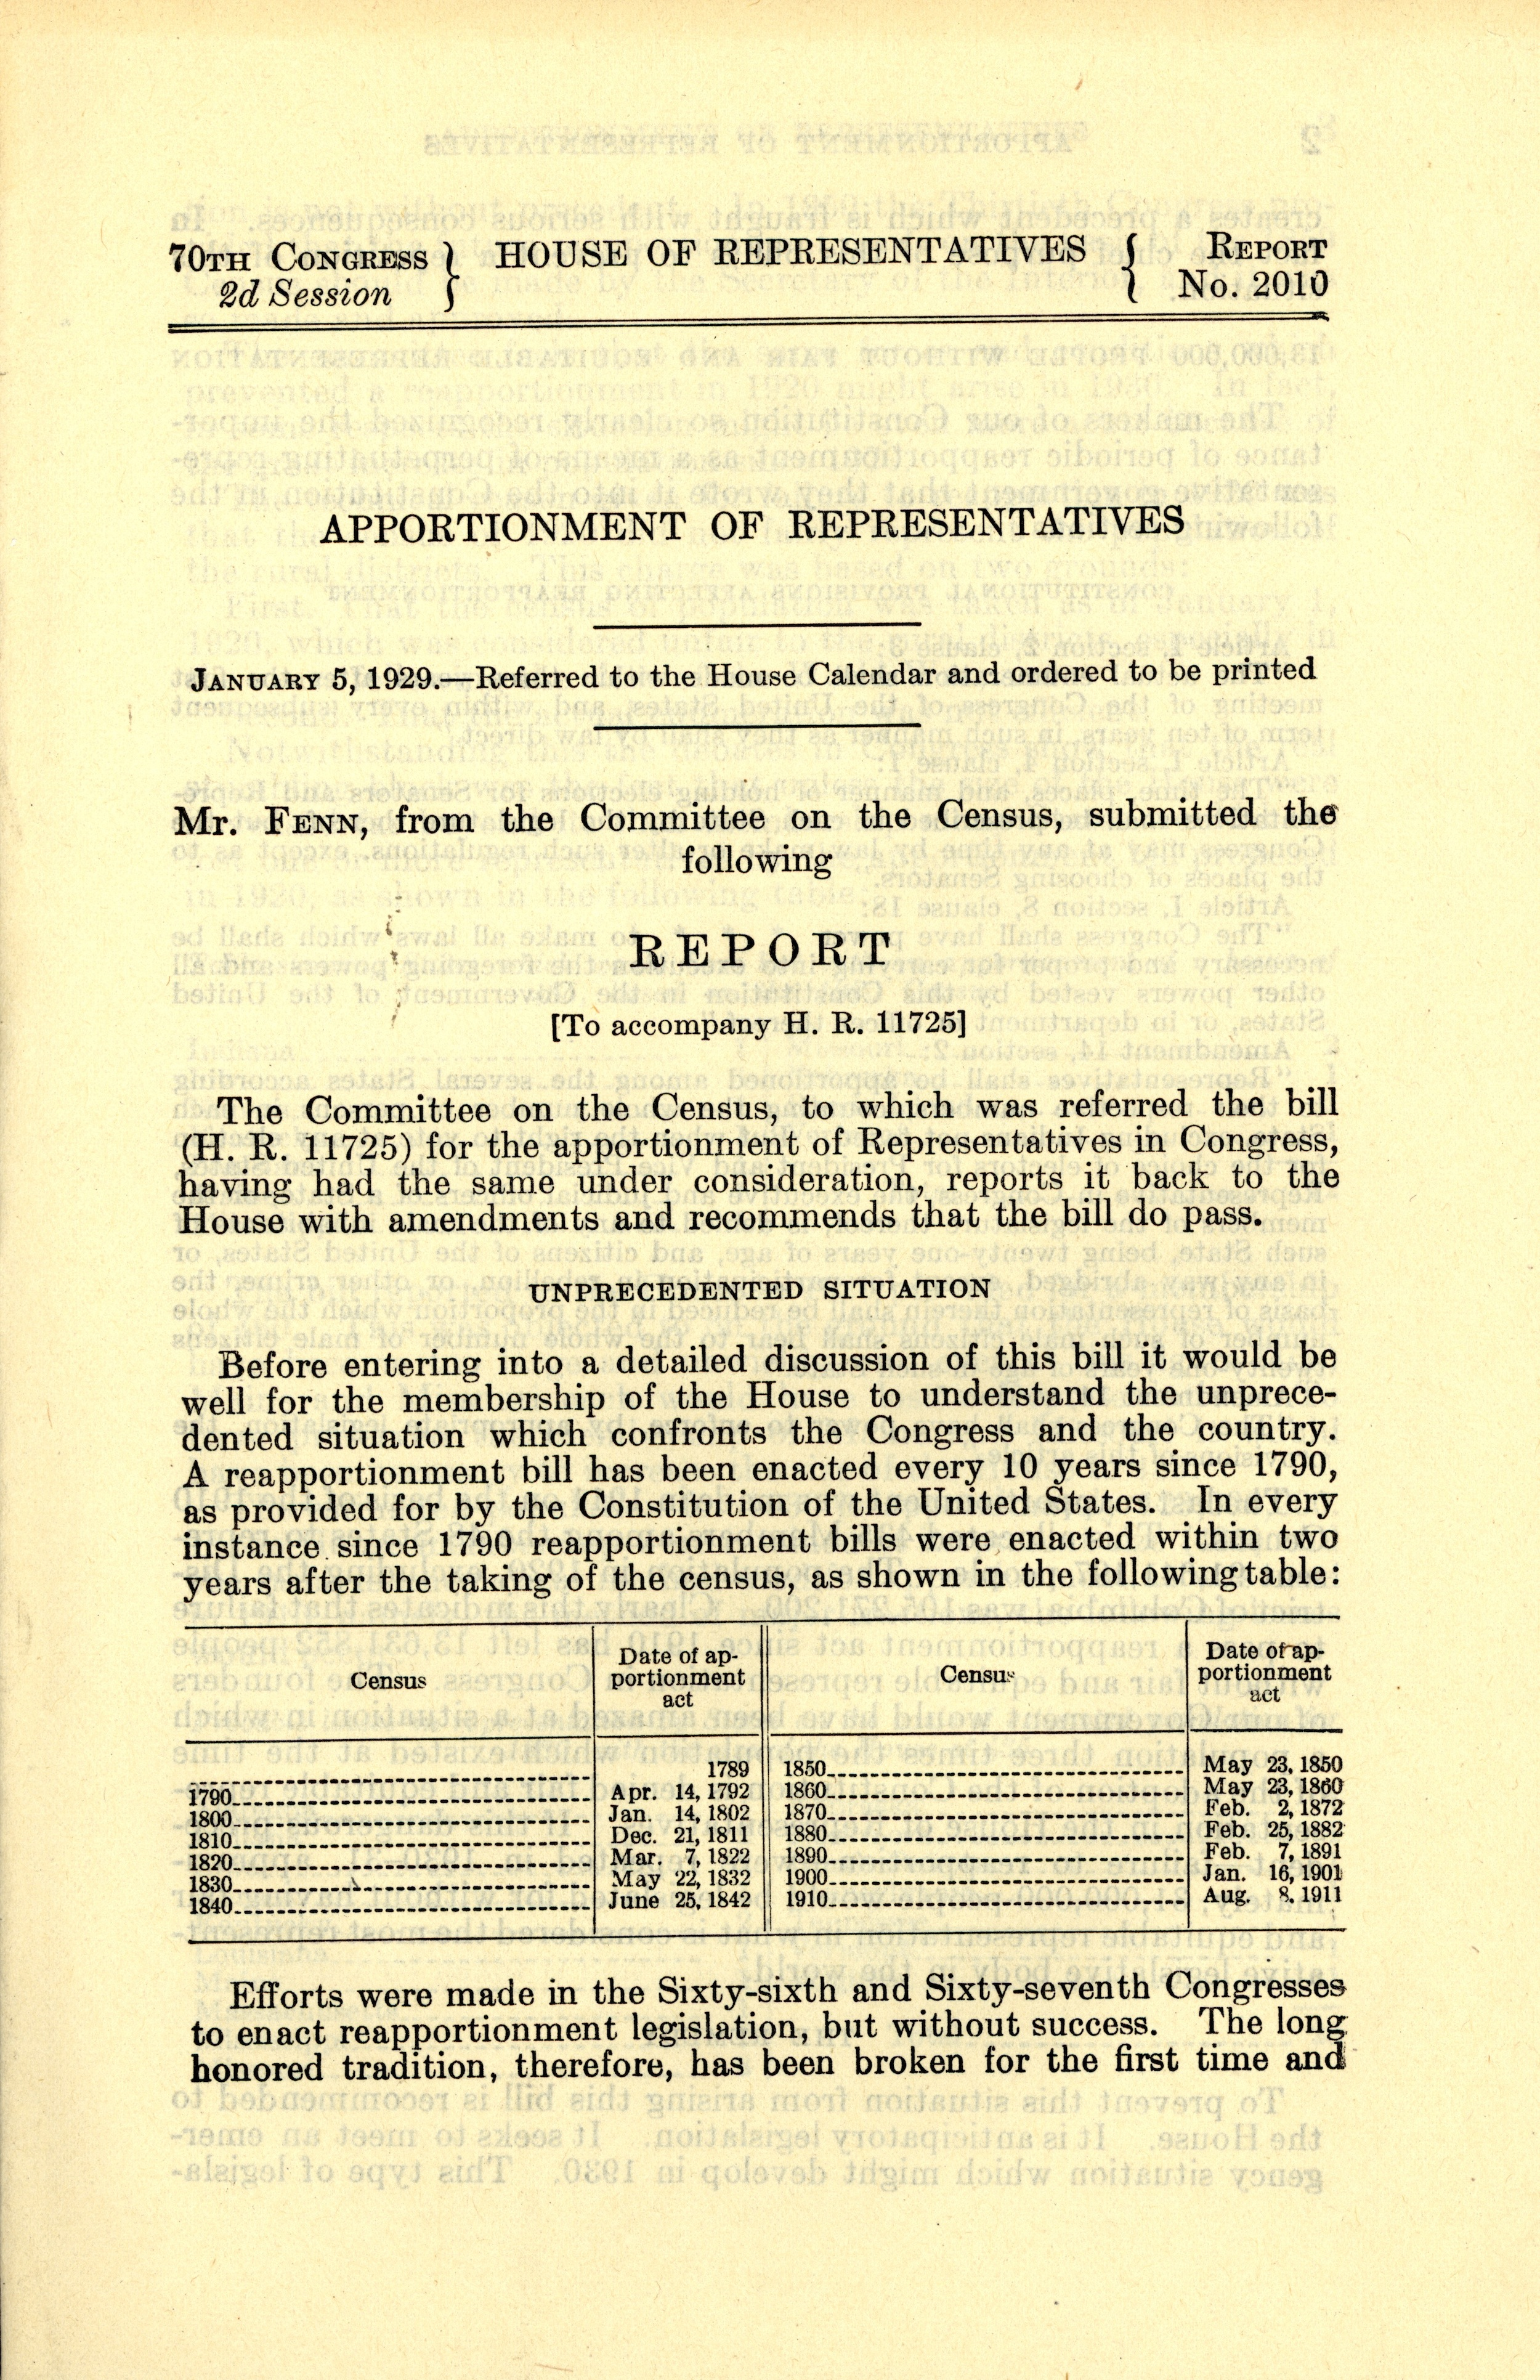 A Report on the Apportionment of Representatives, January 5, 1929, Records of the U.S. House of Representatives, National Archives